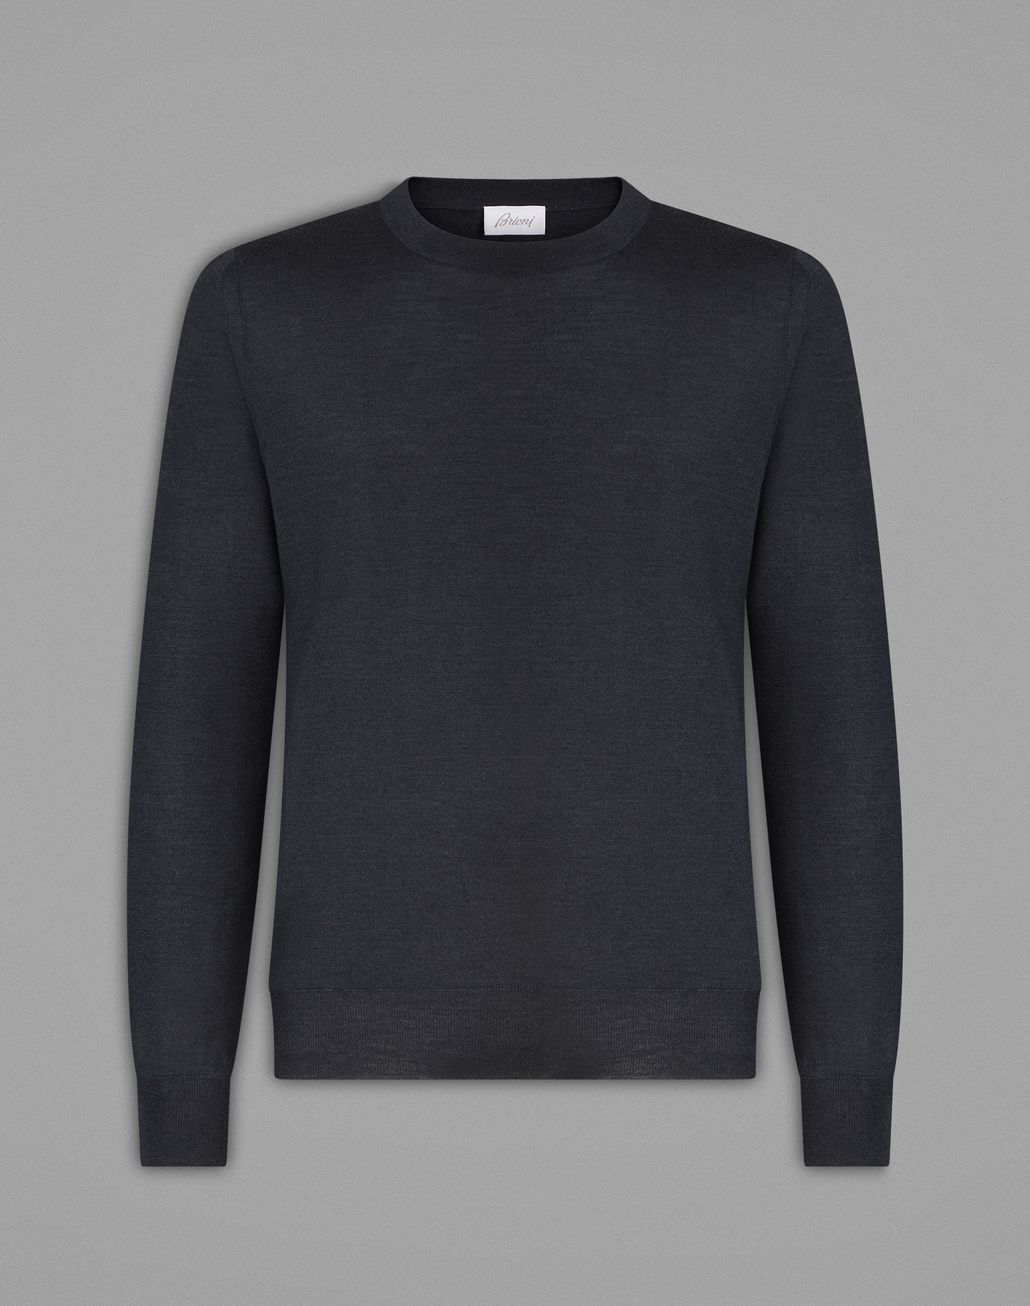 BRIONI Anthracite Gray Crew-Neck Sweater Knitwear Man f